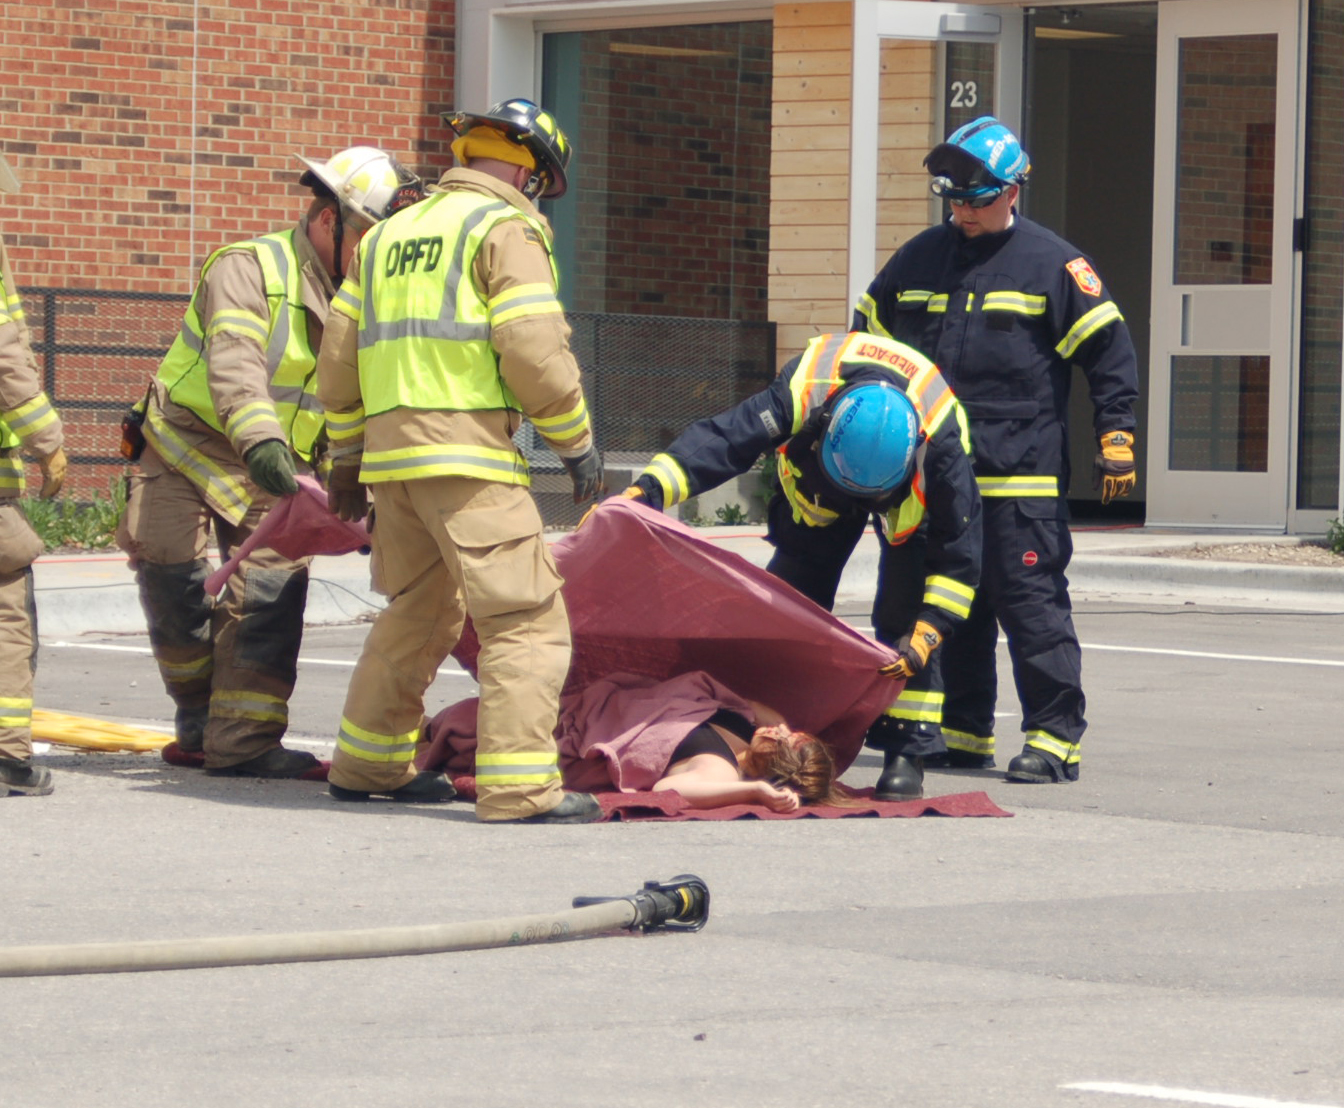 Sam kinison accident scene photos - Students